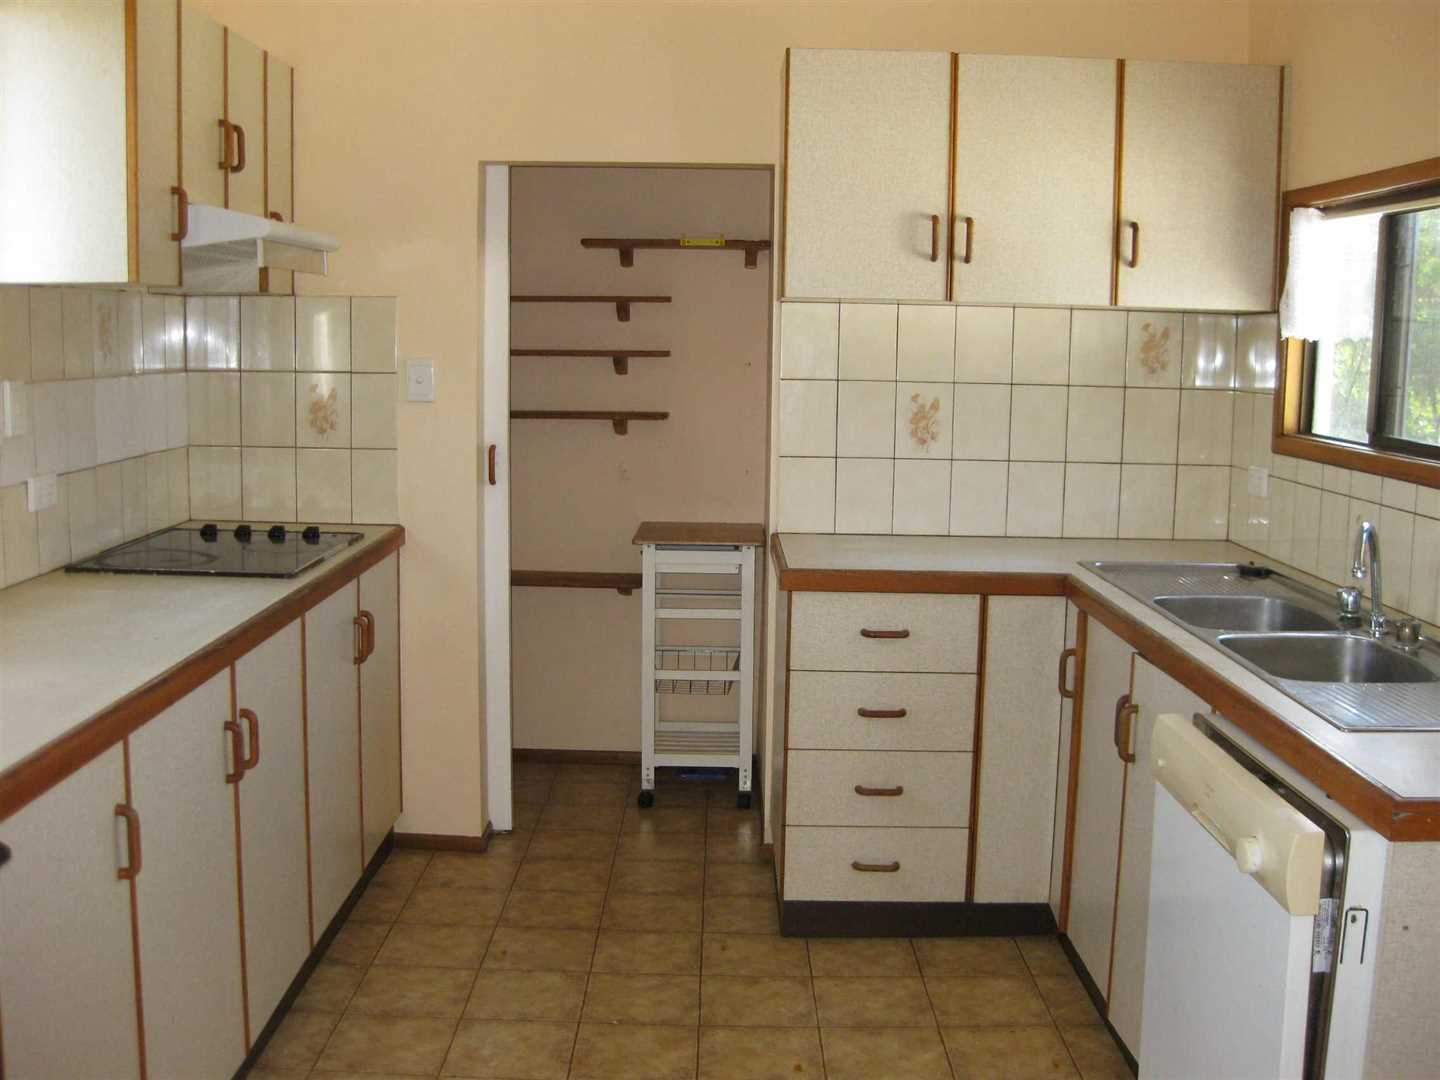 Inside view of part of home showing part of kitchen